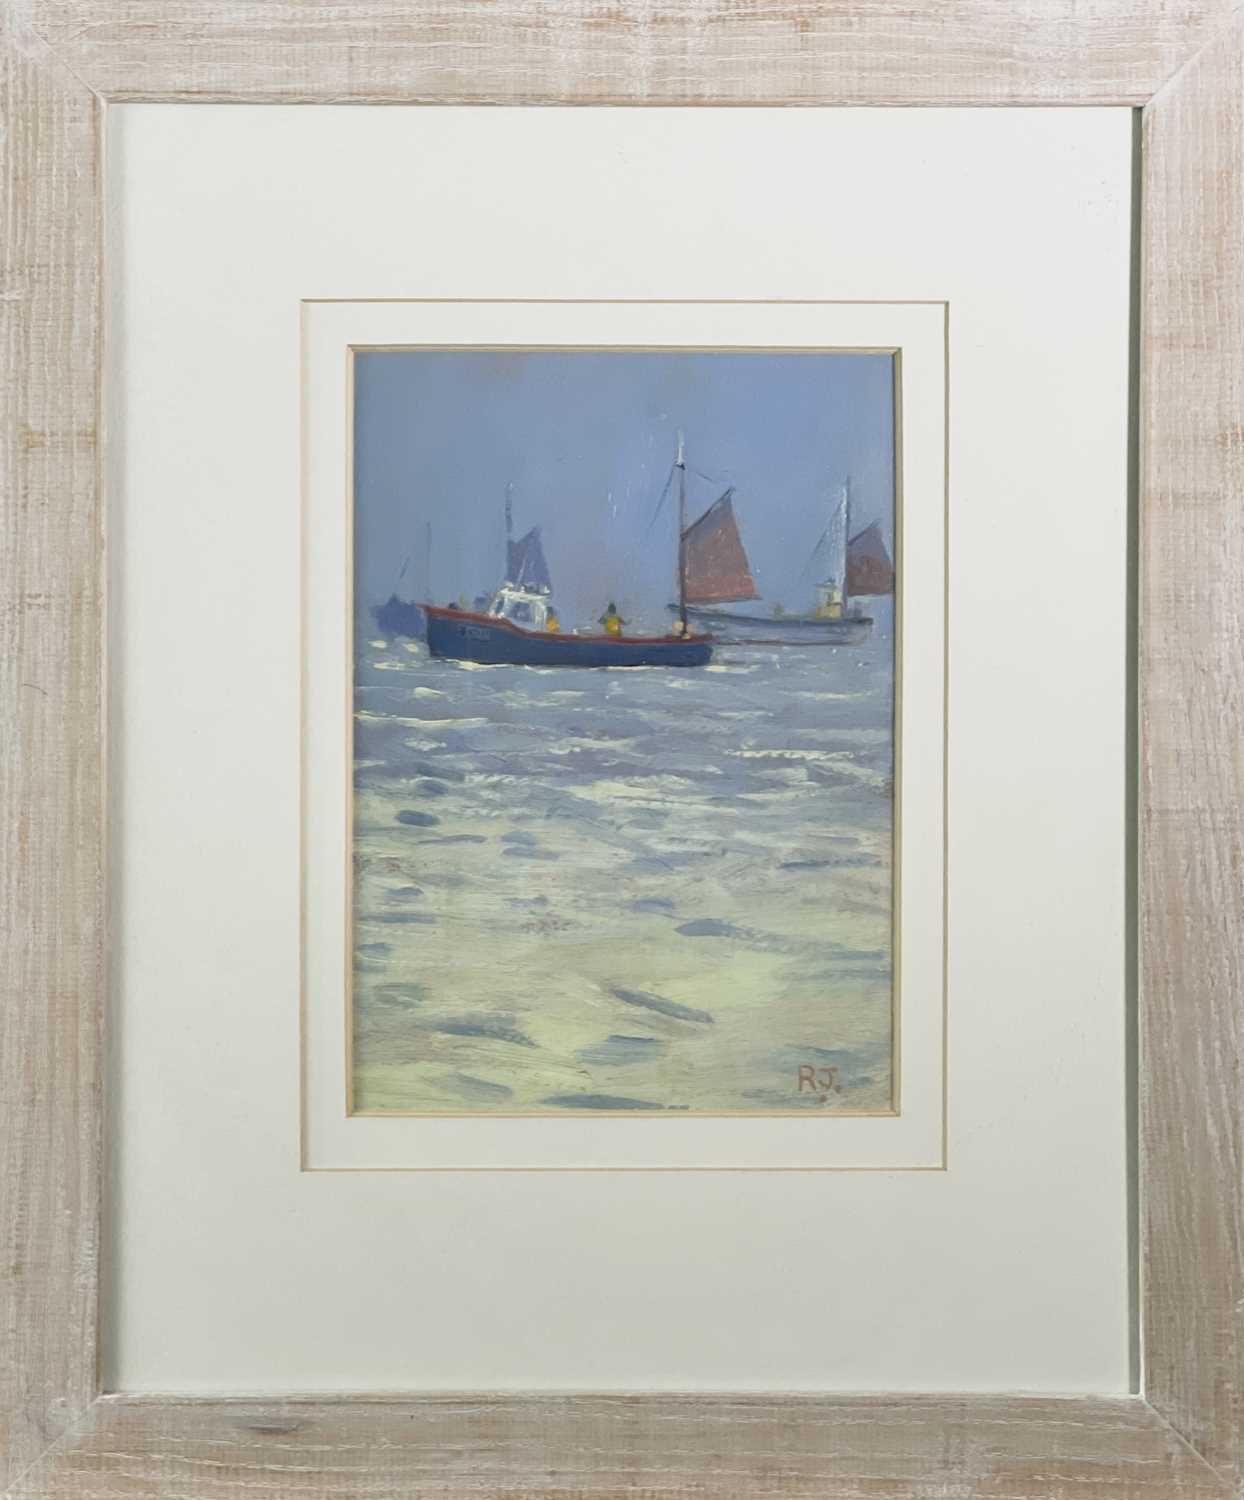 Robert JONES (1943)Mackerel Fishing Oil on board Initialled Signed, inscribed and dated 2003 to - Image 2 of 3